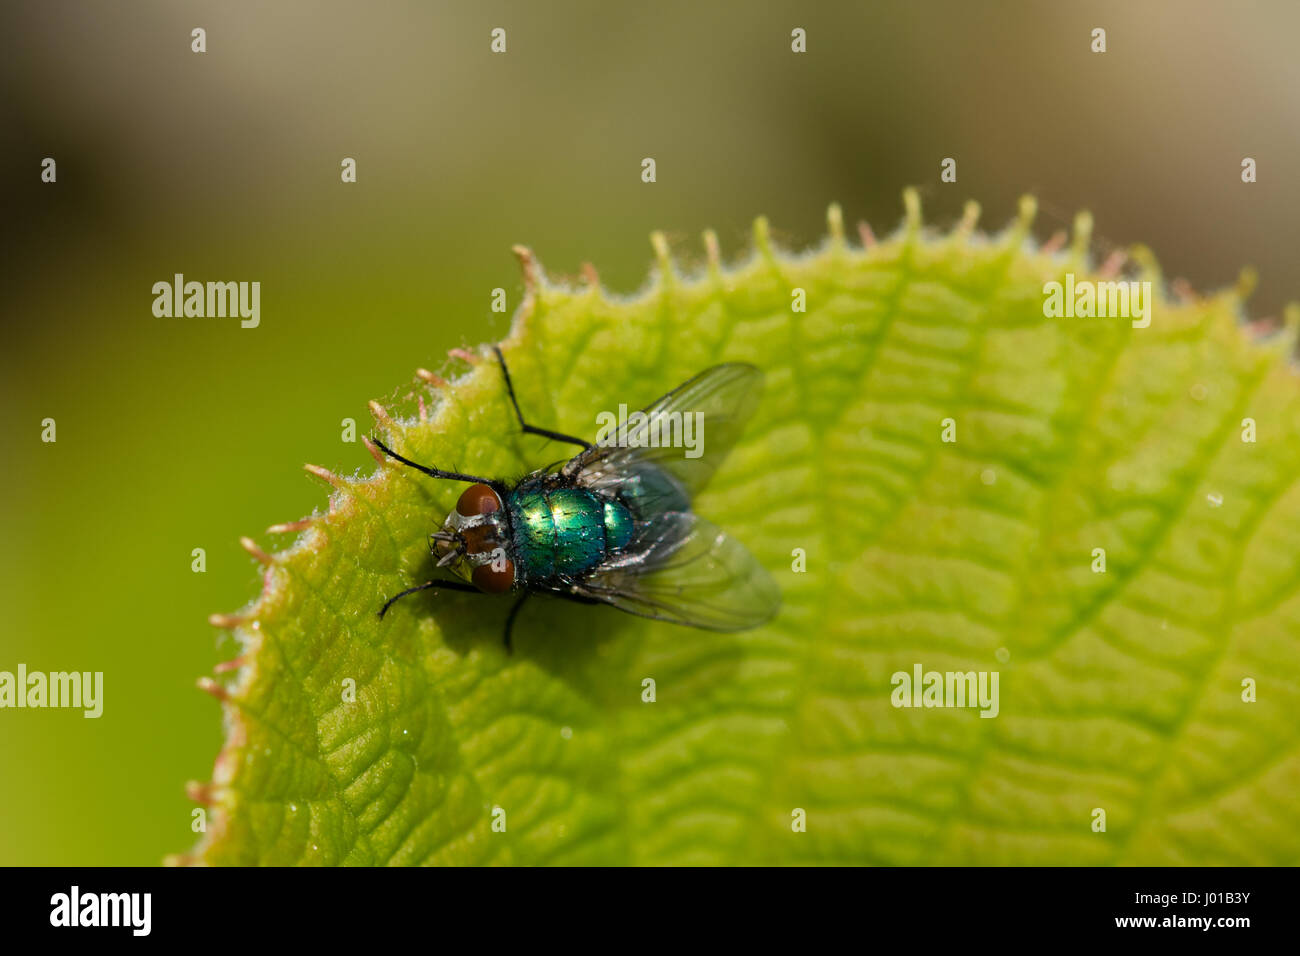 Green bluebottle fly with dew water droplets on body hair warming up in the spring sunshine on a leaf of the kiwi - Stock Image